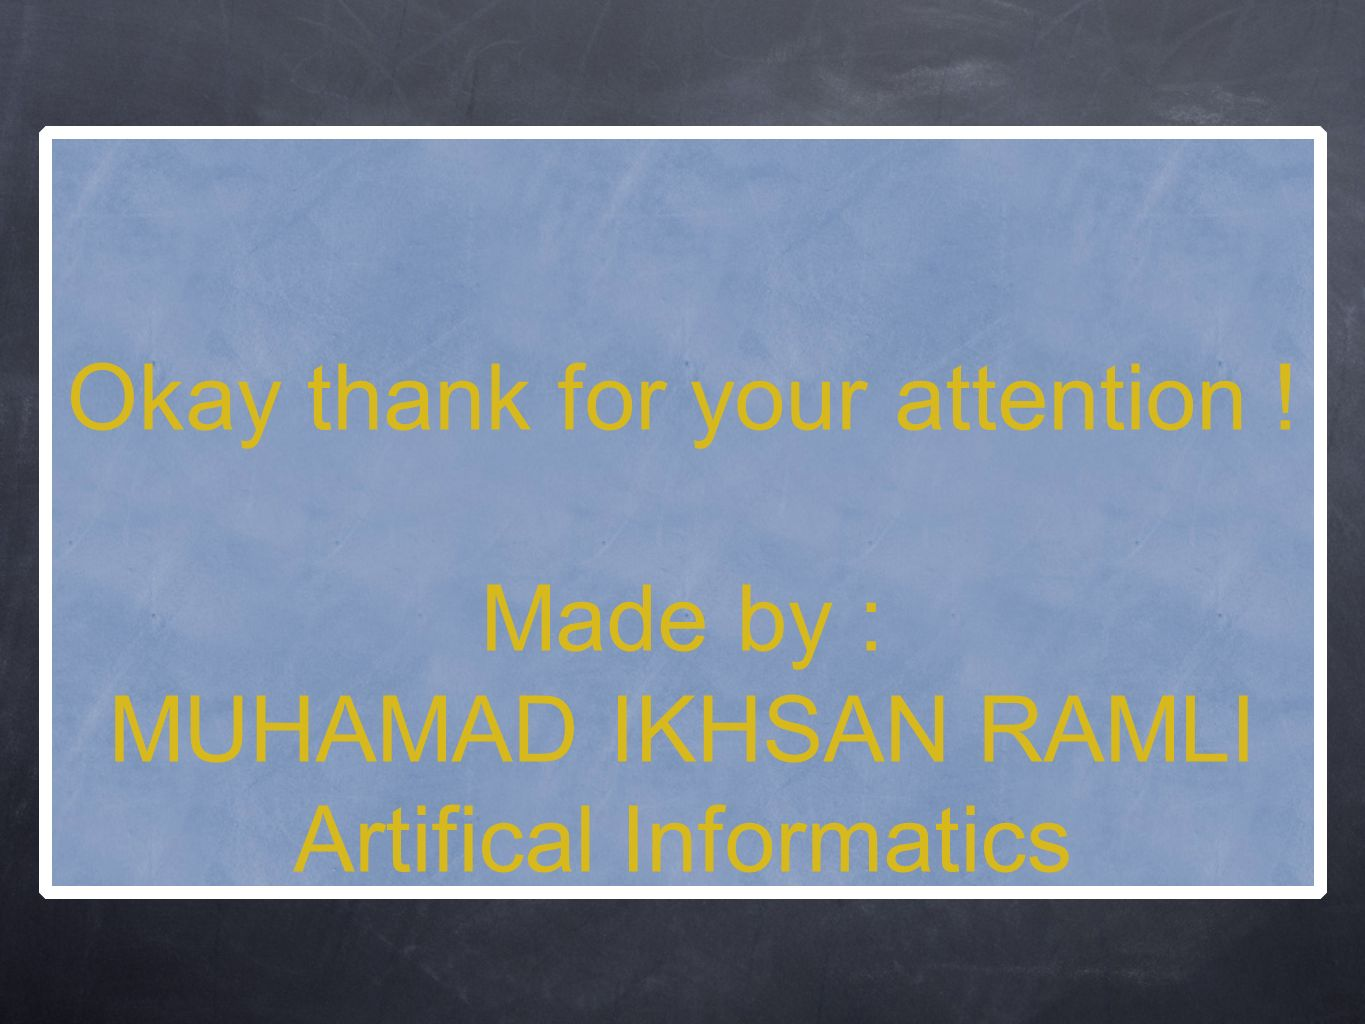 Okay thank for your attention ! Made by : MUHAMAD IKHSAN RAMLI Artifical Informatics